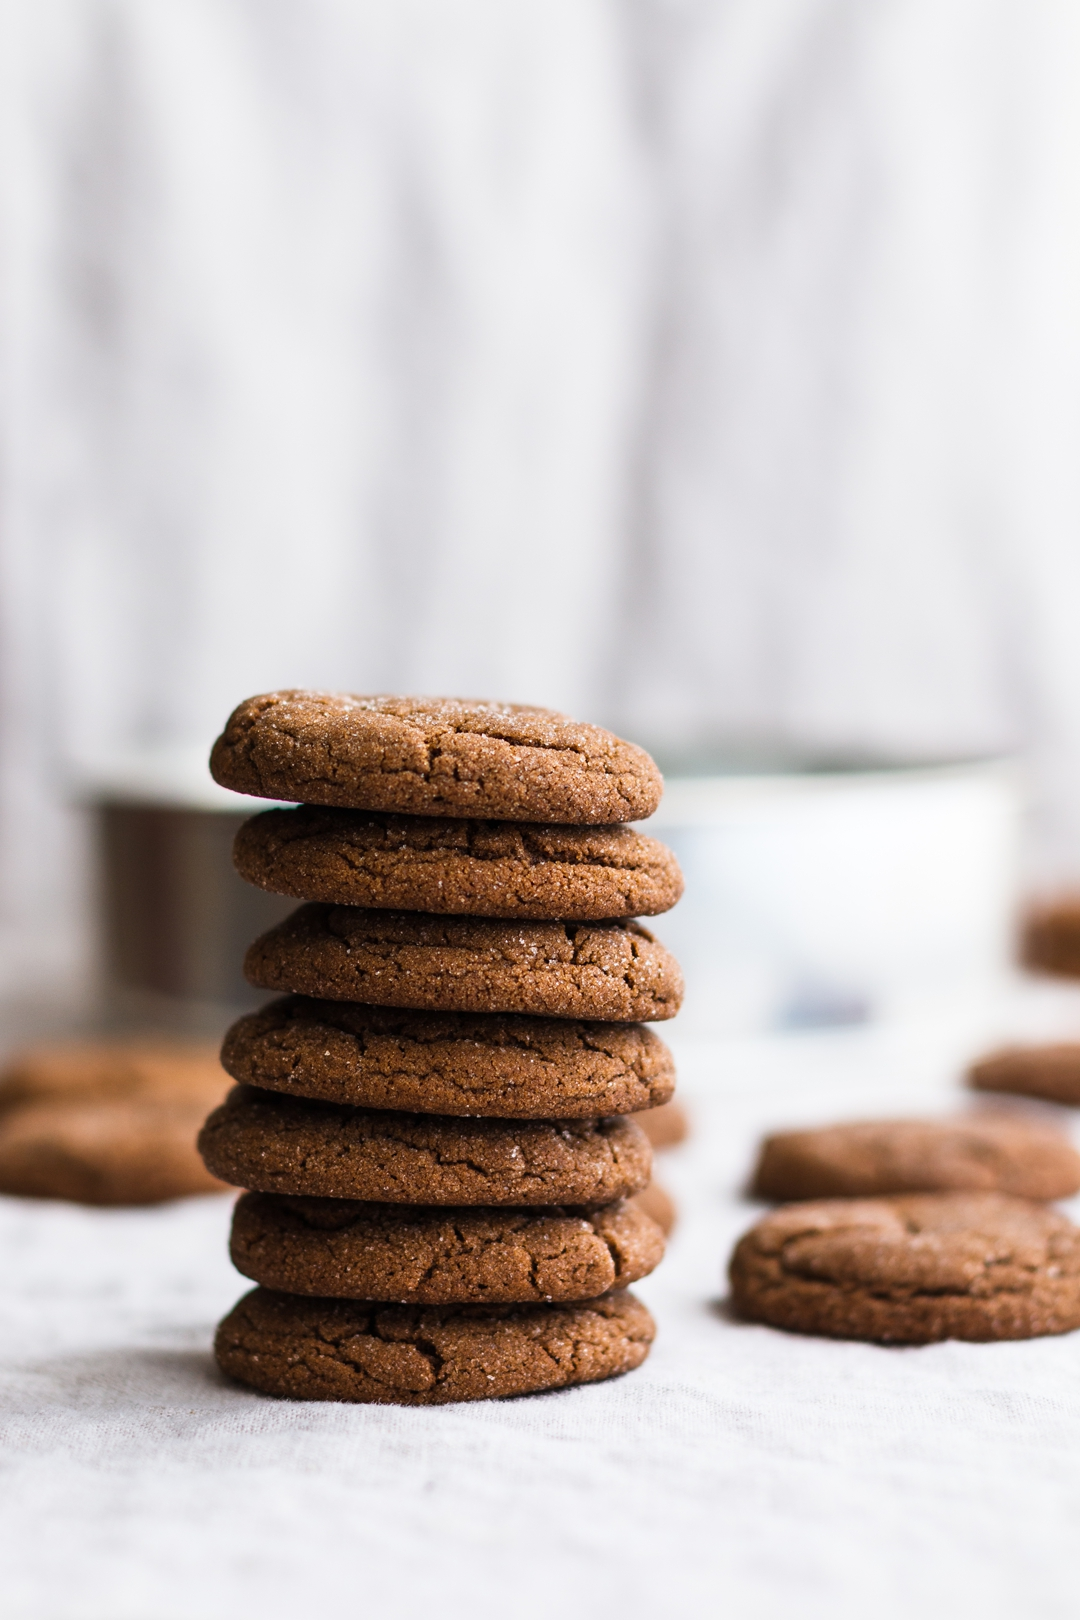 Straight on shot of stacked molasses cookies surrounded by more cookies in the background.